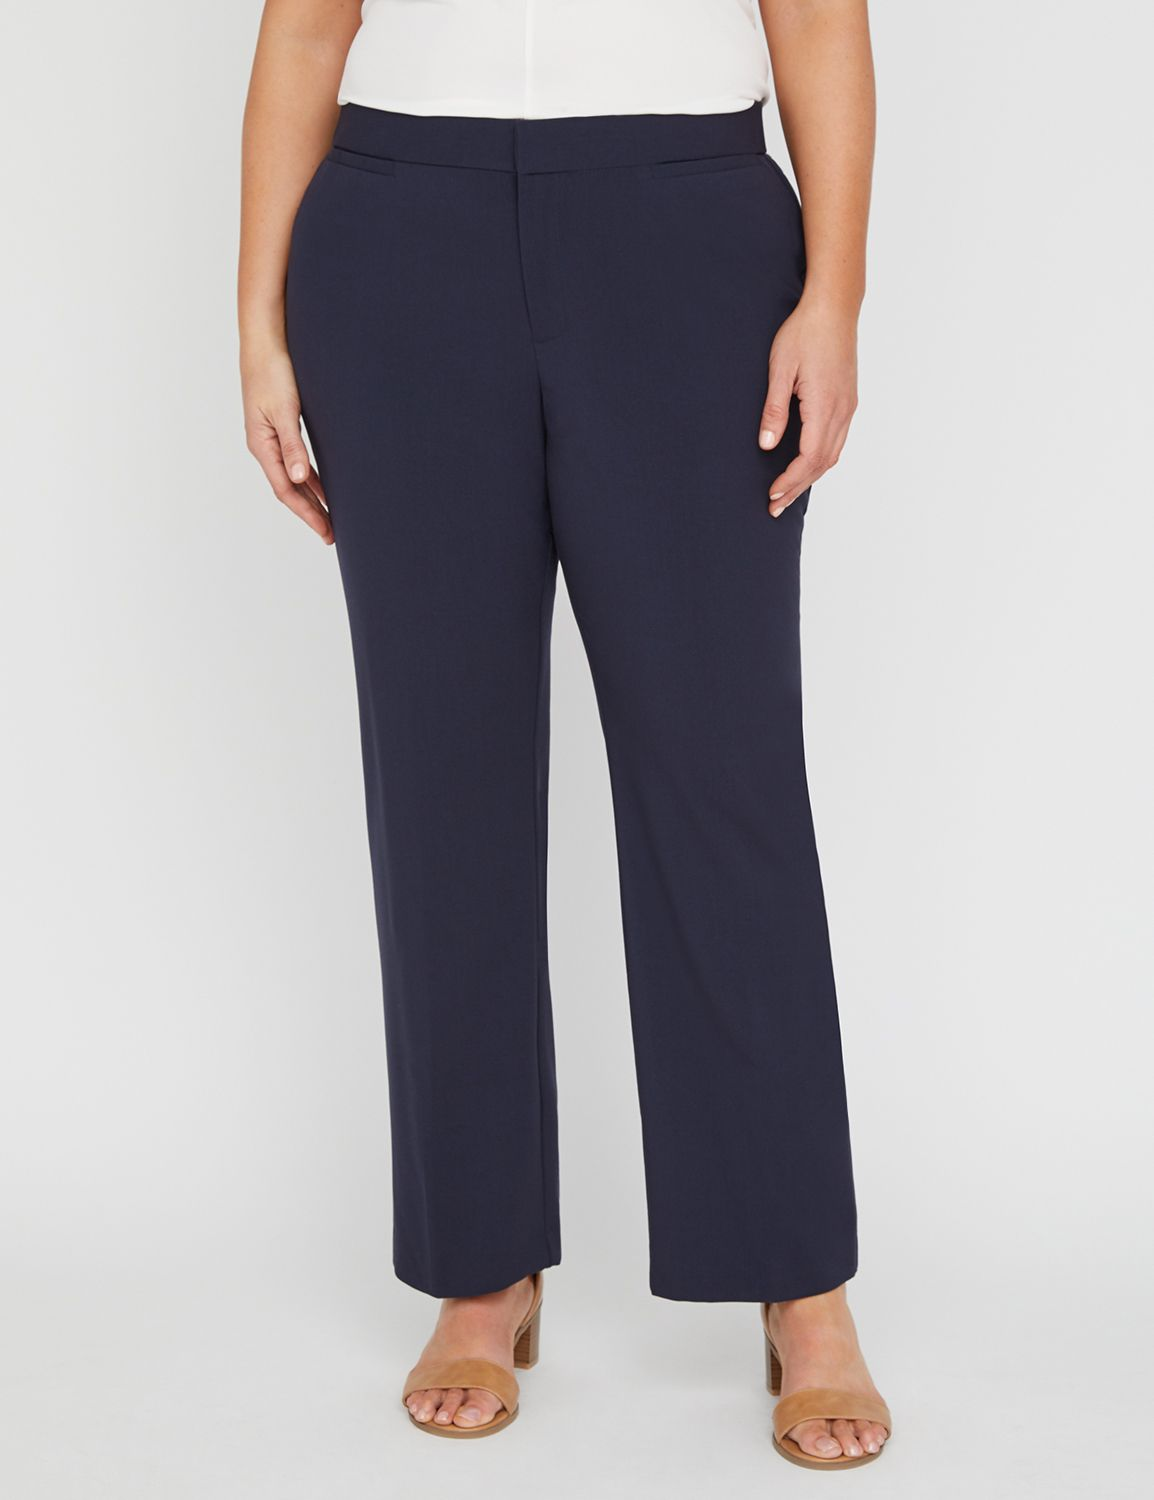 Right Fit Pant (Moderately Curvy) Right Fit Pant (Moderately Curvy) MP-300043672